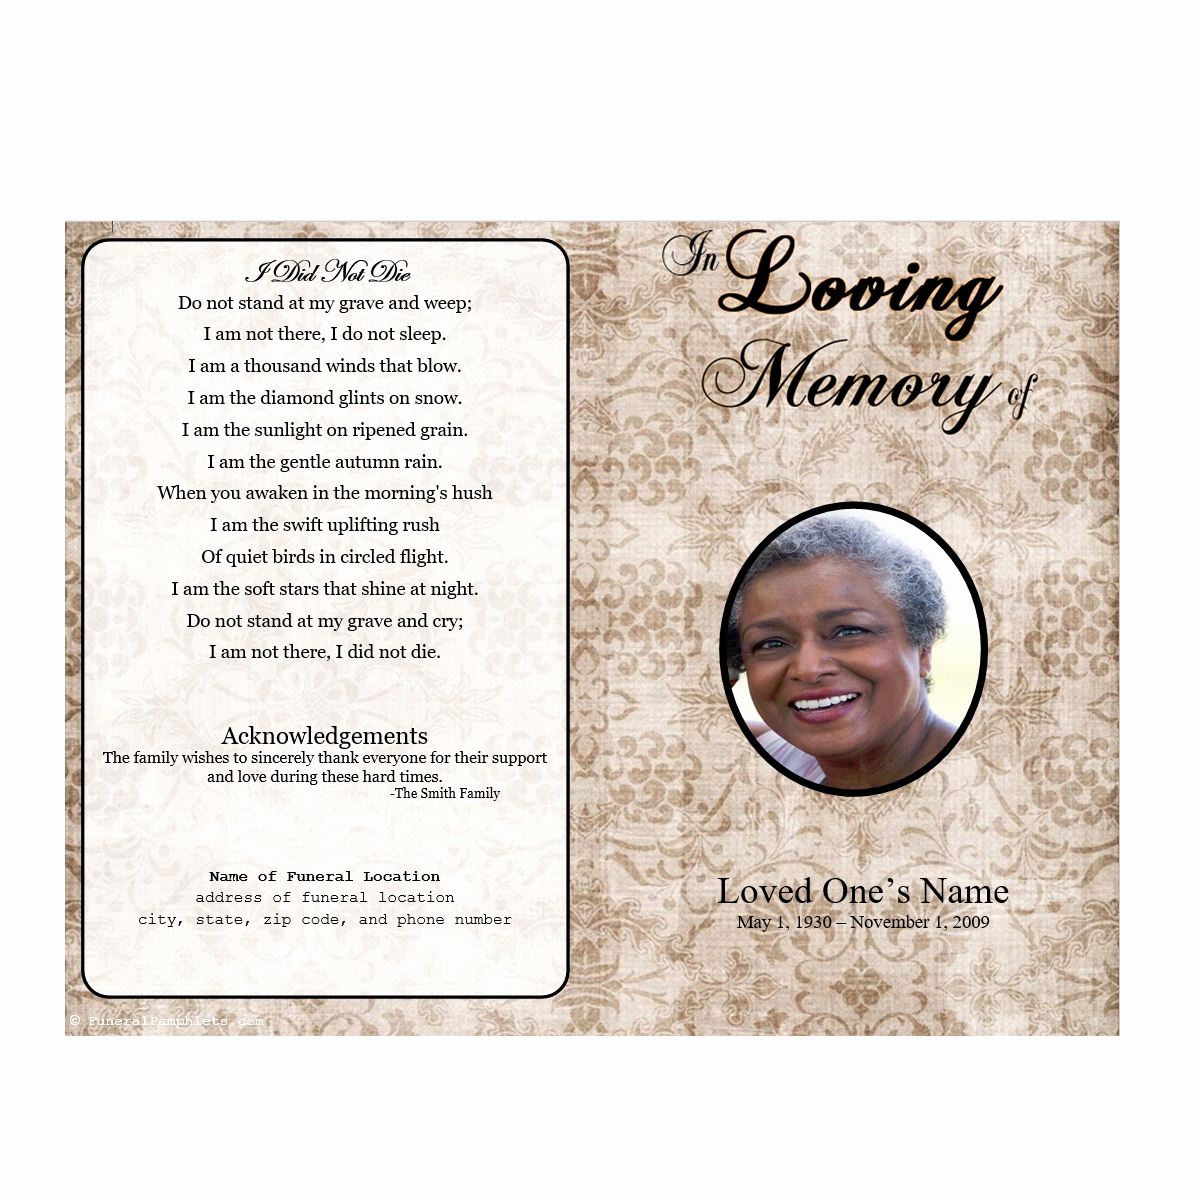 Funeral Program Template Free Awesome Obituary Program Template Letter Examples Funeral Samples